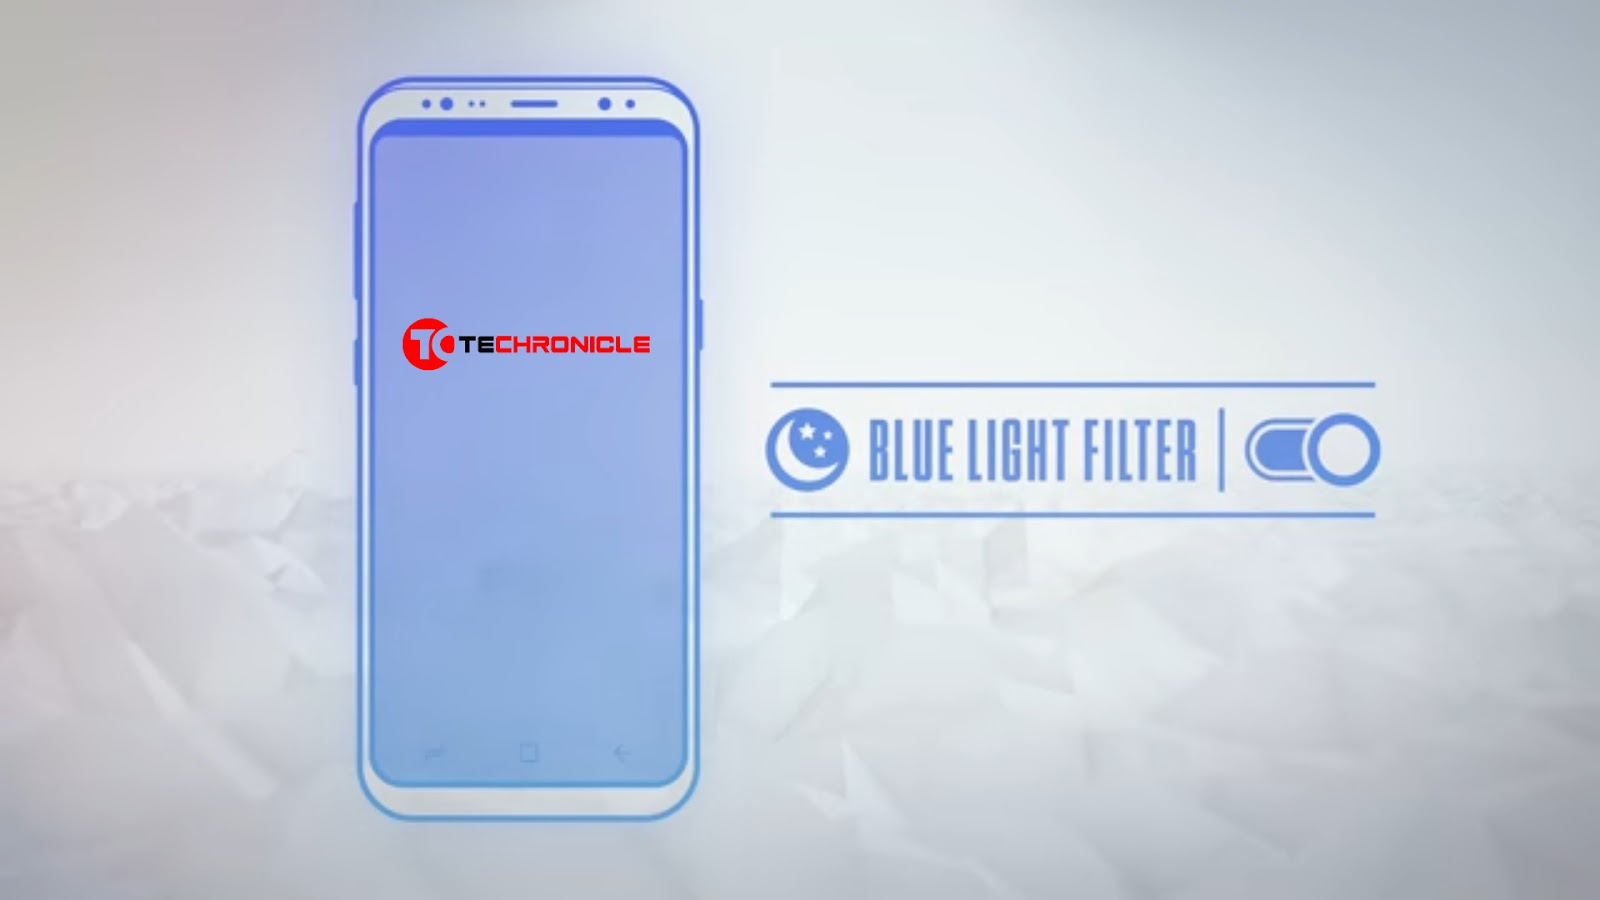 Smartphone Bluelight Filter Vector Image Techronicle